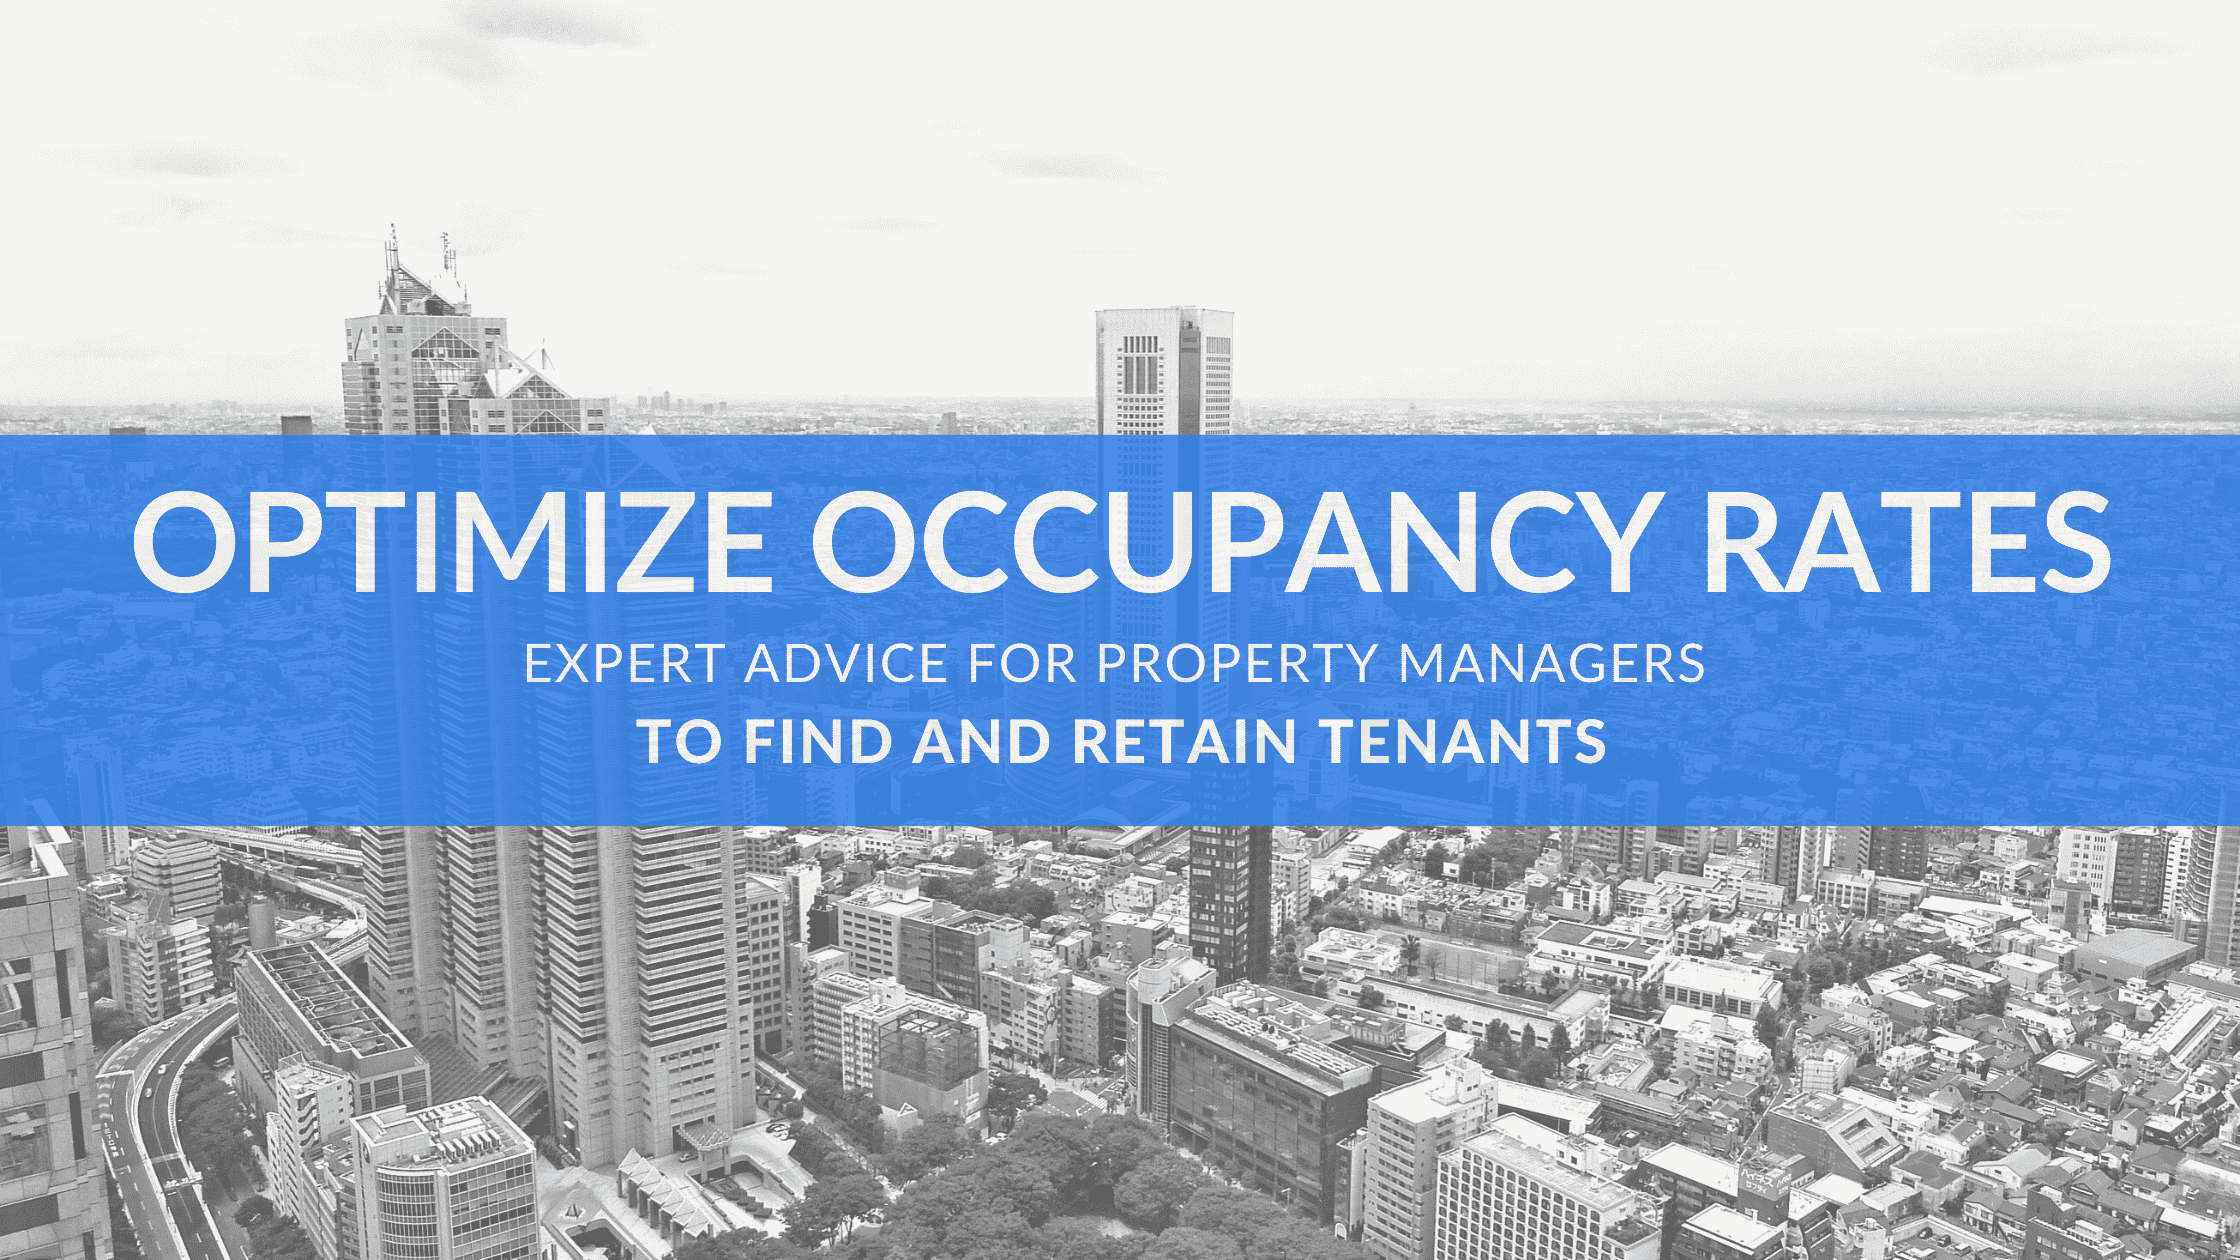 Why spend five times more money finding new tenants when you can retain the old ones who are 70% more likely to stay? Read and implement our expert advice for better tenant retention and a high rental occupancy rate.